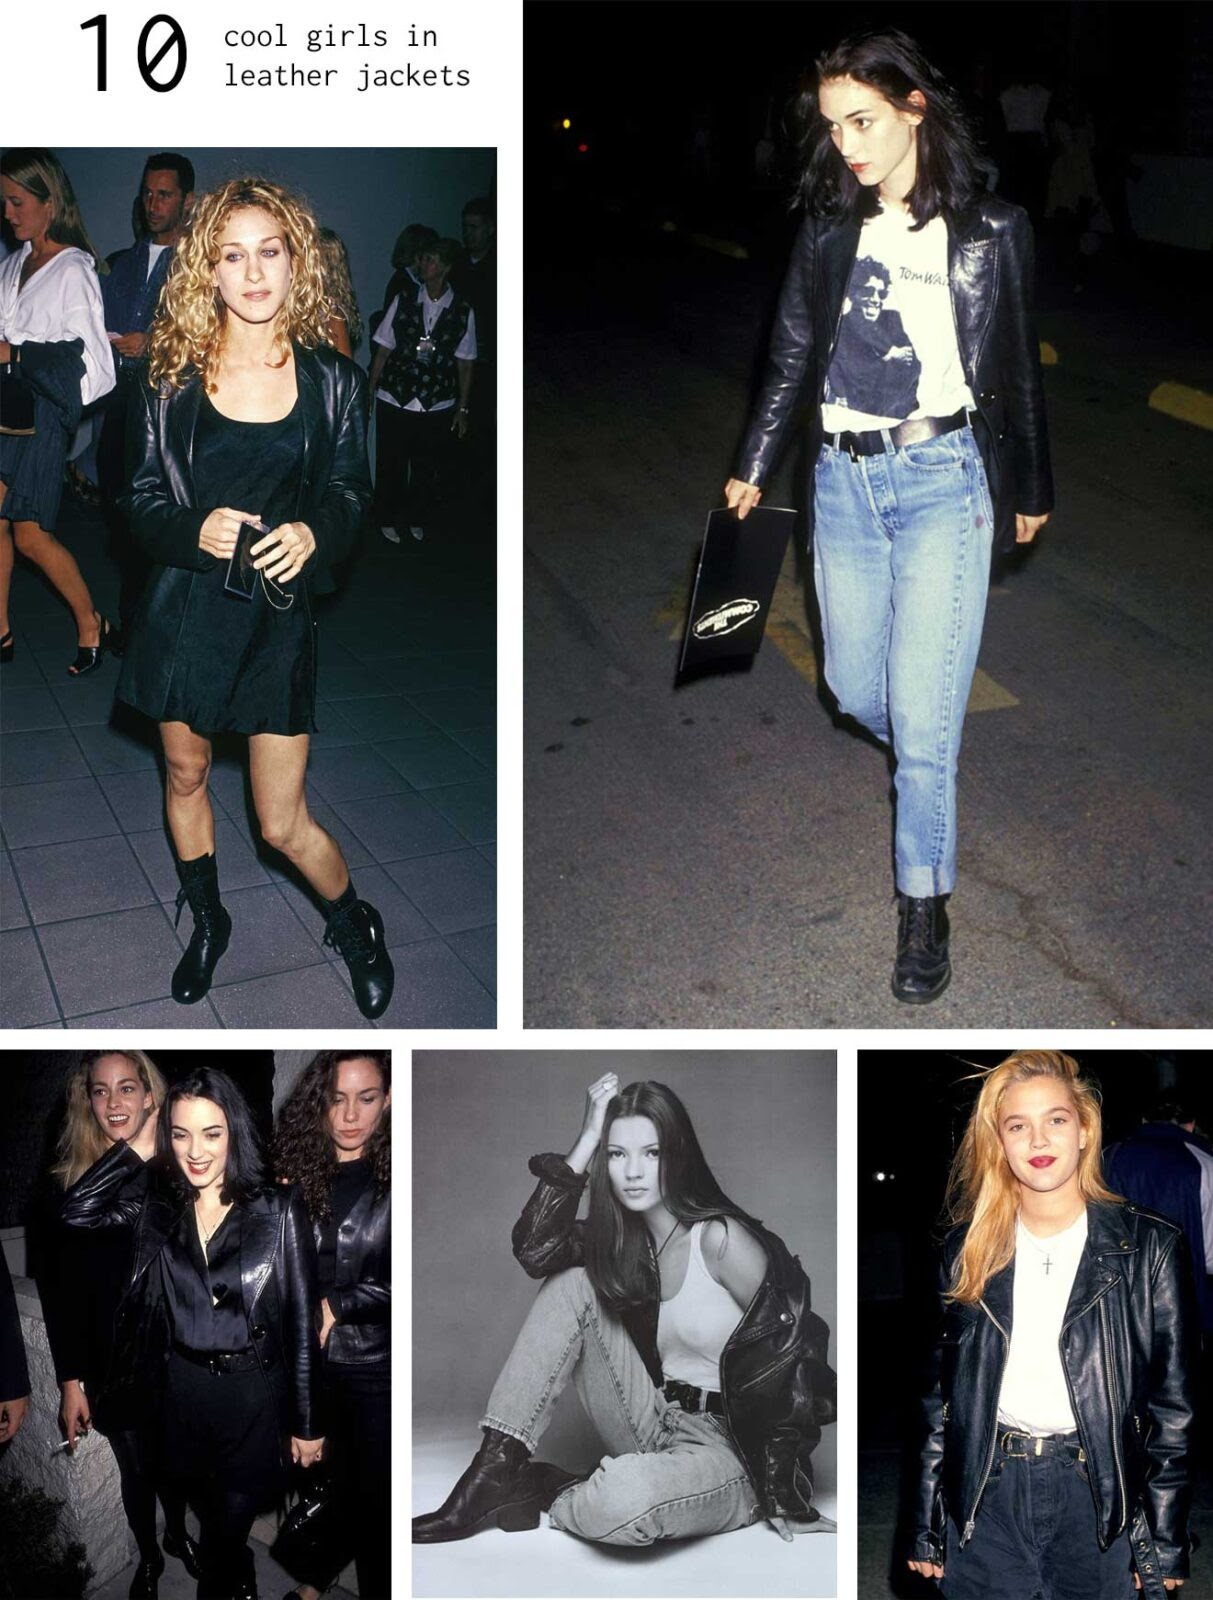 miss moss · 90s fashion moments